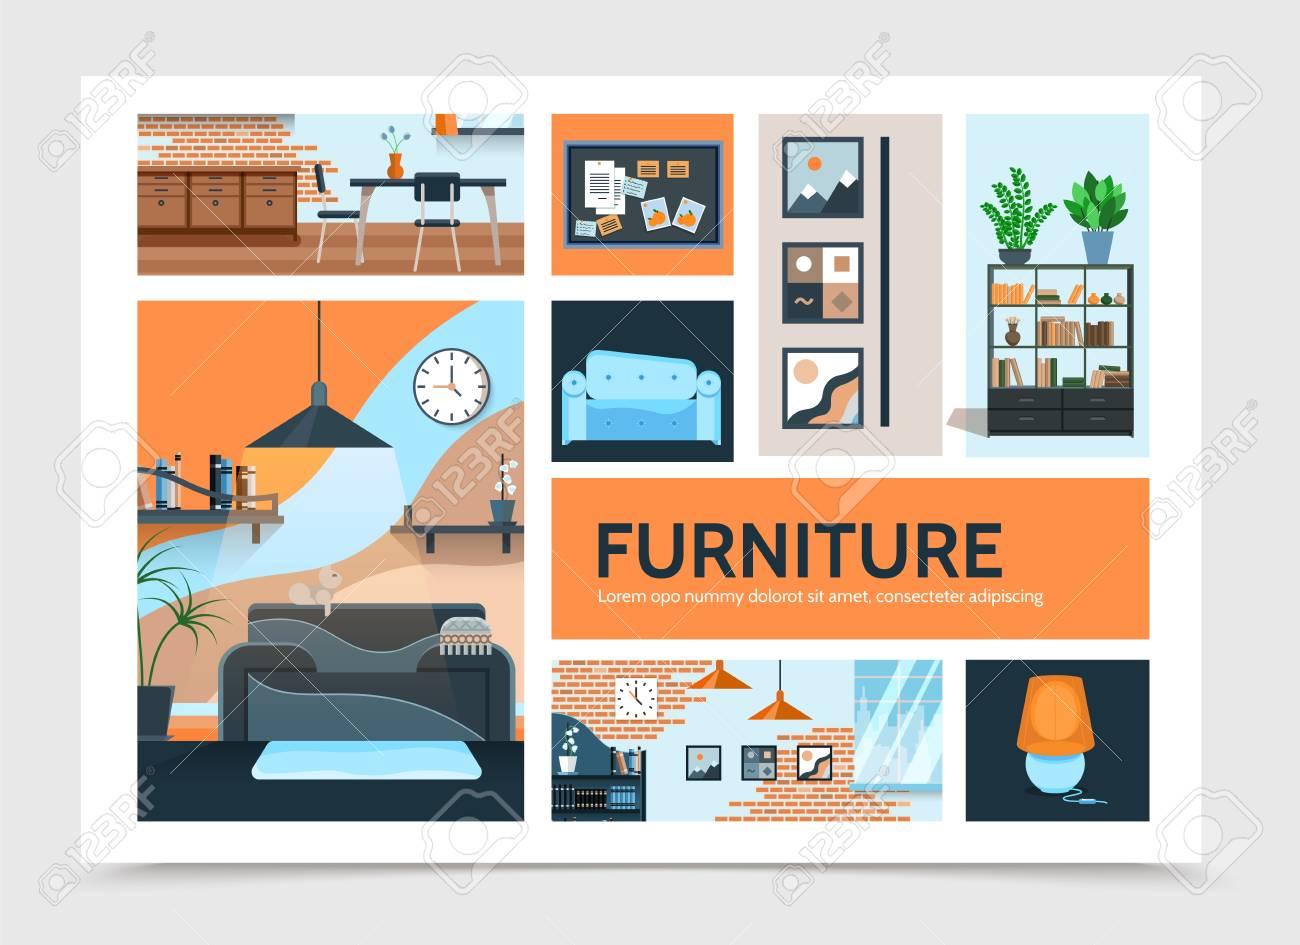 Flat home interior infographic template with furniture pictures lamp cupboard table chairs plants clock modern brick wall design vector illustration - 106619103